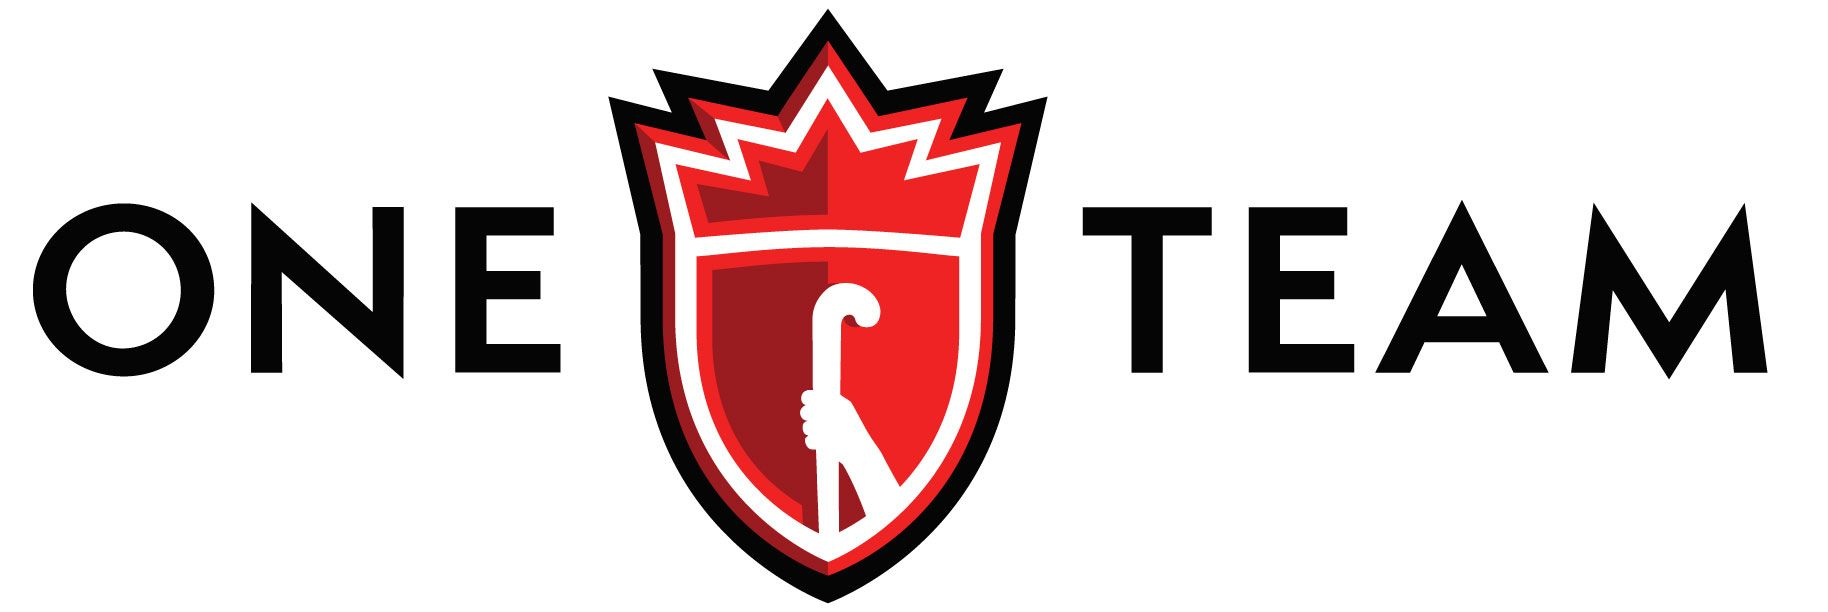 Pin by nick p on sports logo pinterest sports logo and ice hockey canada logo field hockey leaf design sports logos identity campaign hockey biocorpaavc Image collections